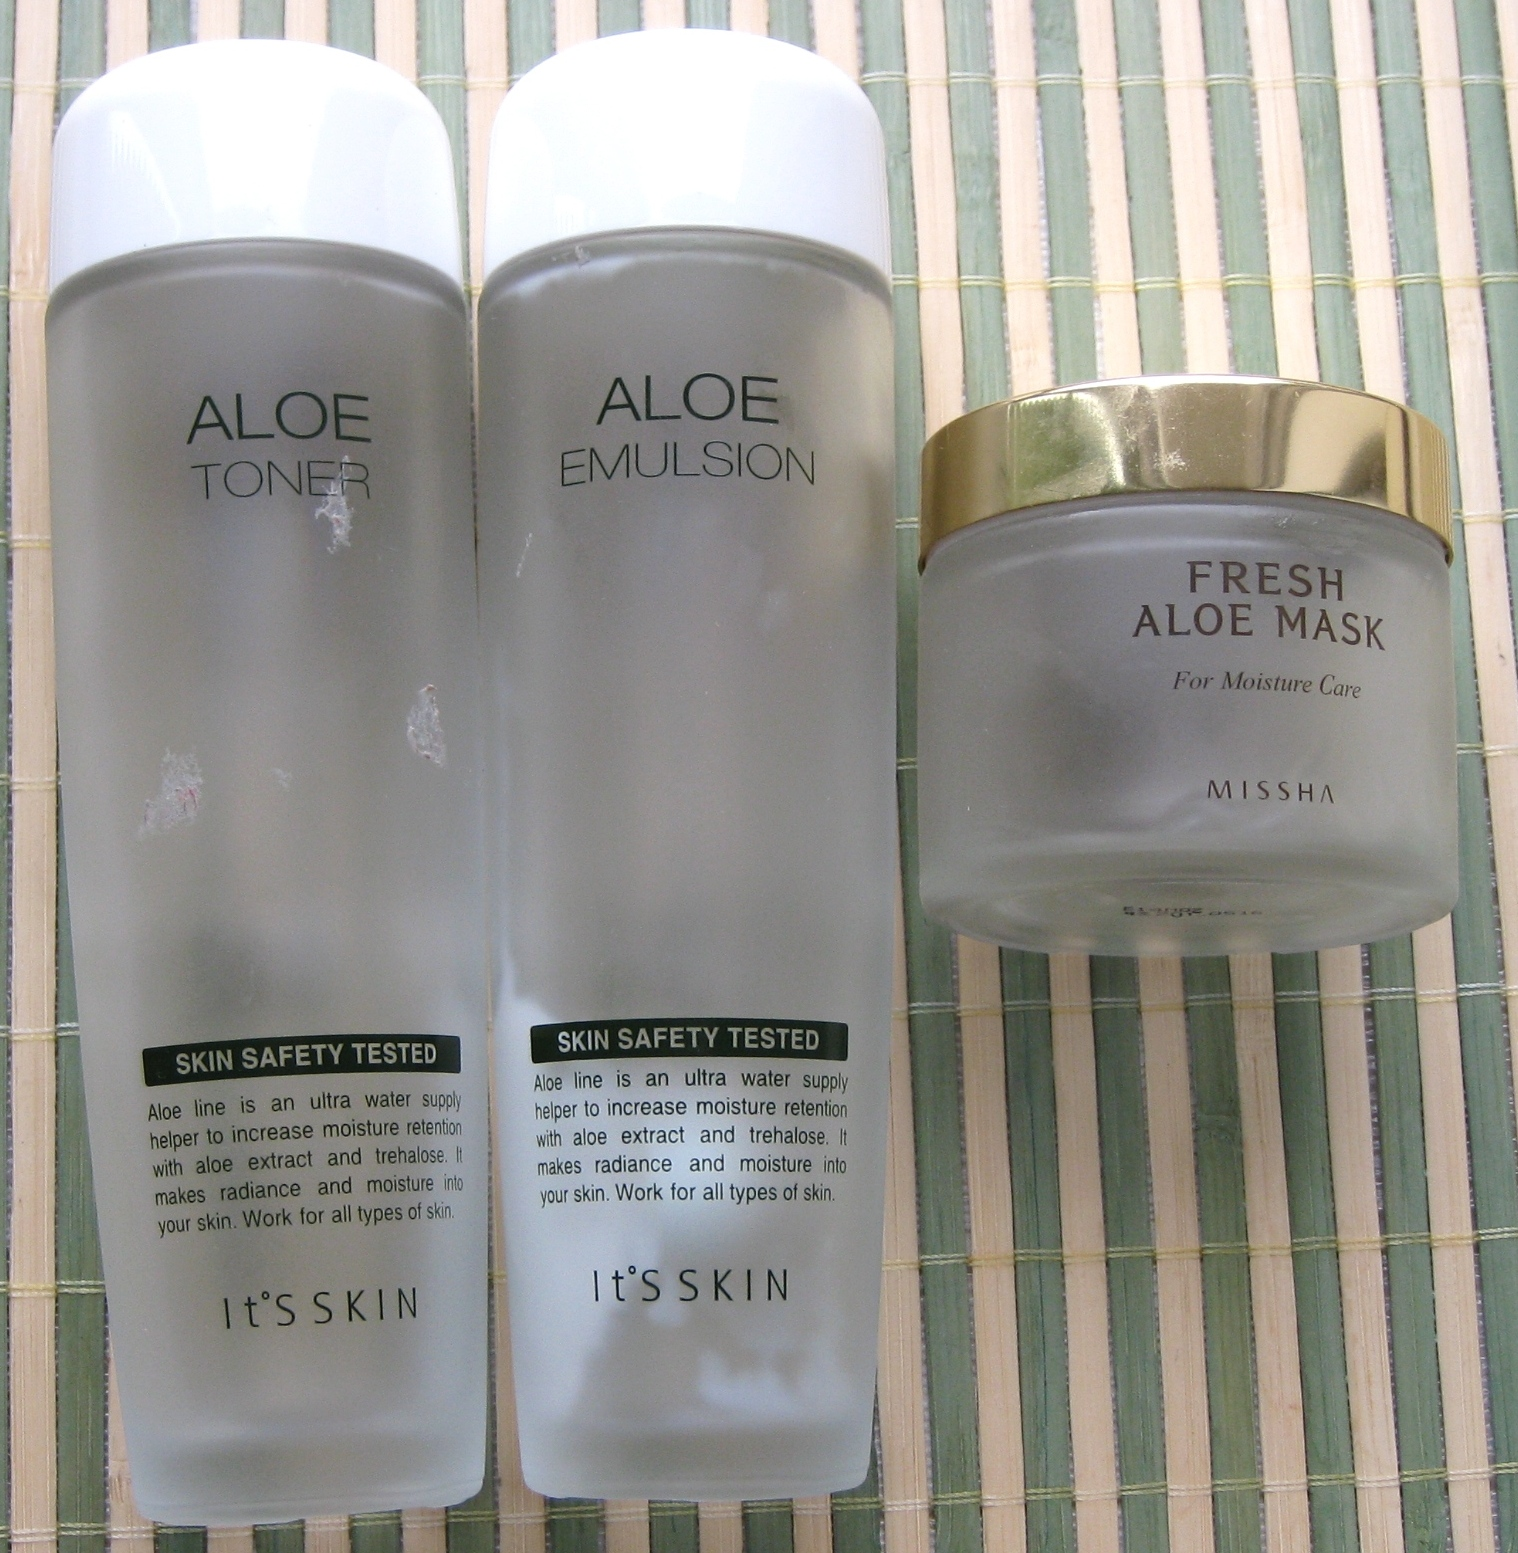 It's Skin Aloe Emulsion, It's Skin Aloe Toner, MISSHA Fresh aloe mask